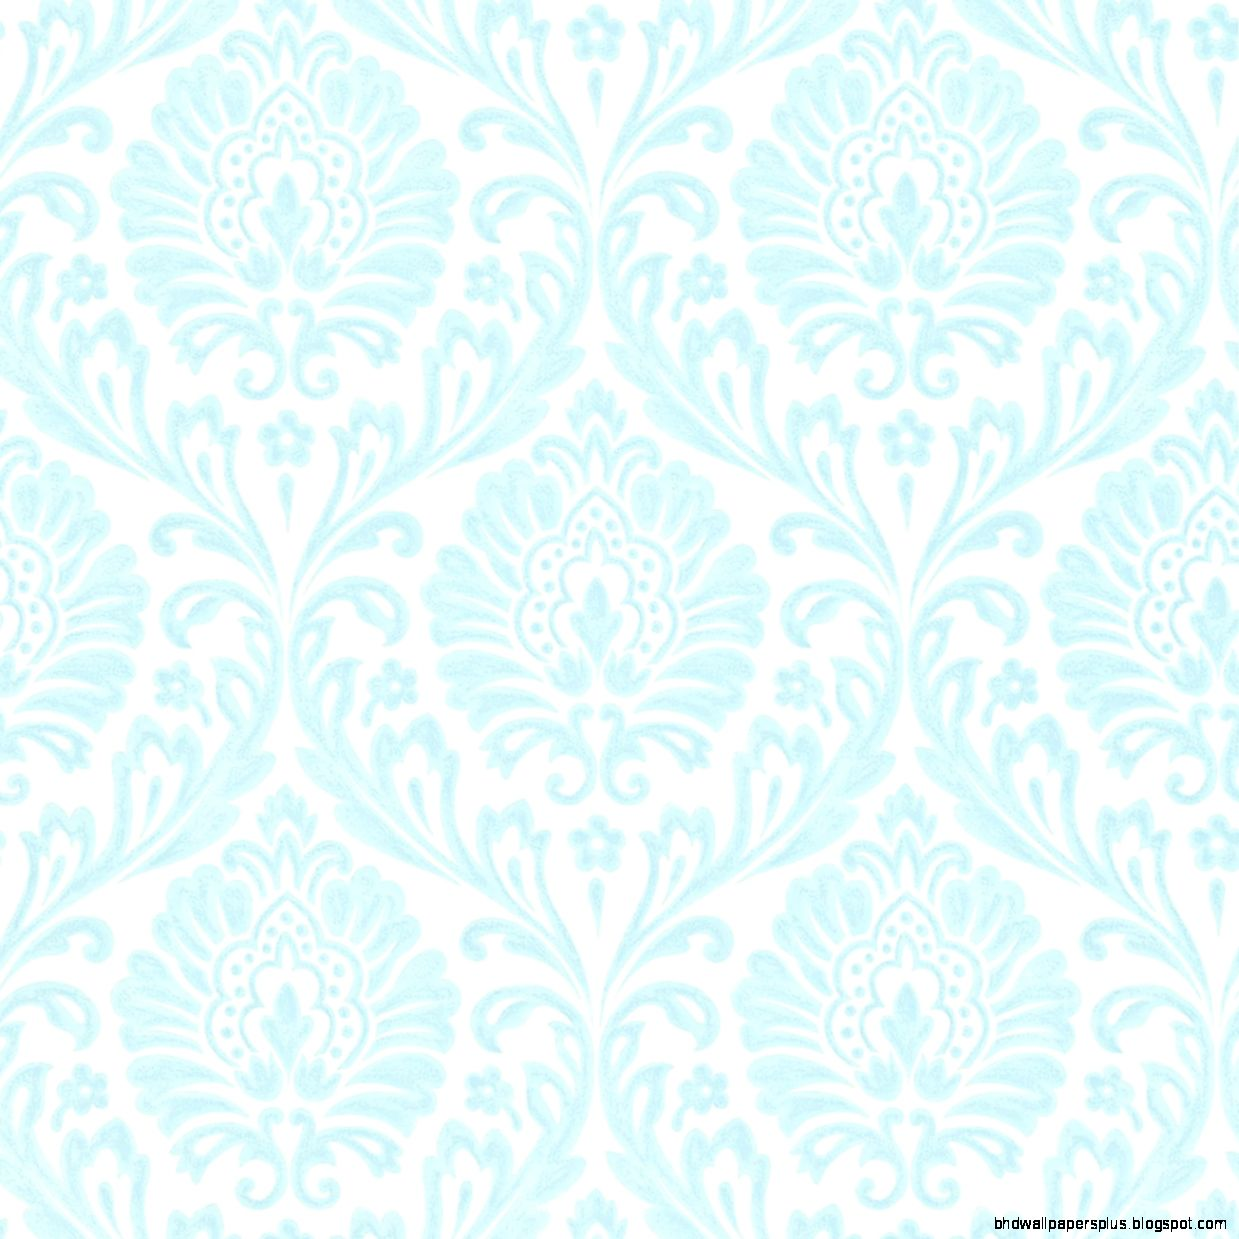 Duck Egg Blue and Ivory Damask Fabric